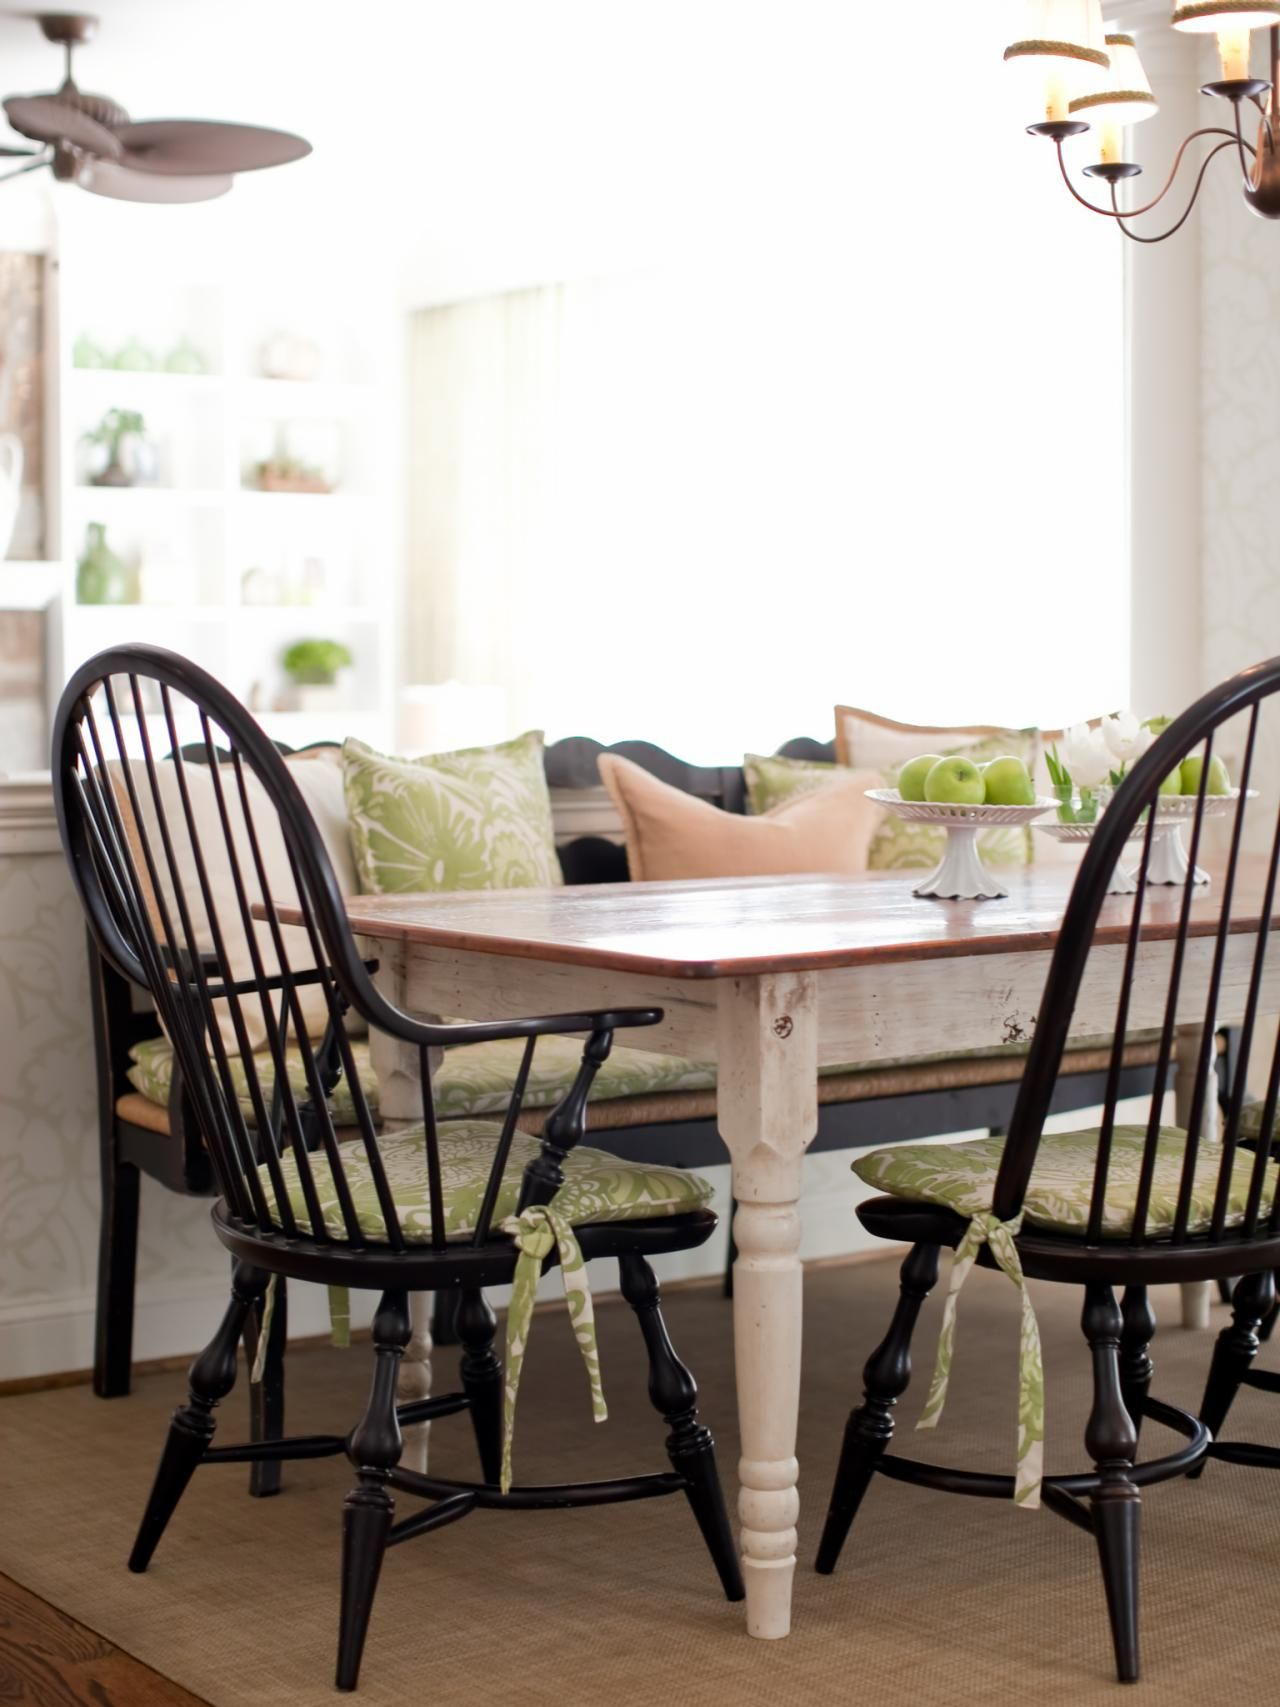 Black Windsor Chairs Around Country Dining Table Farmhouse